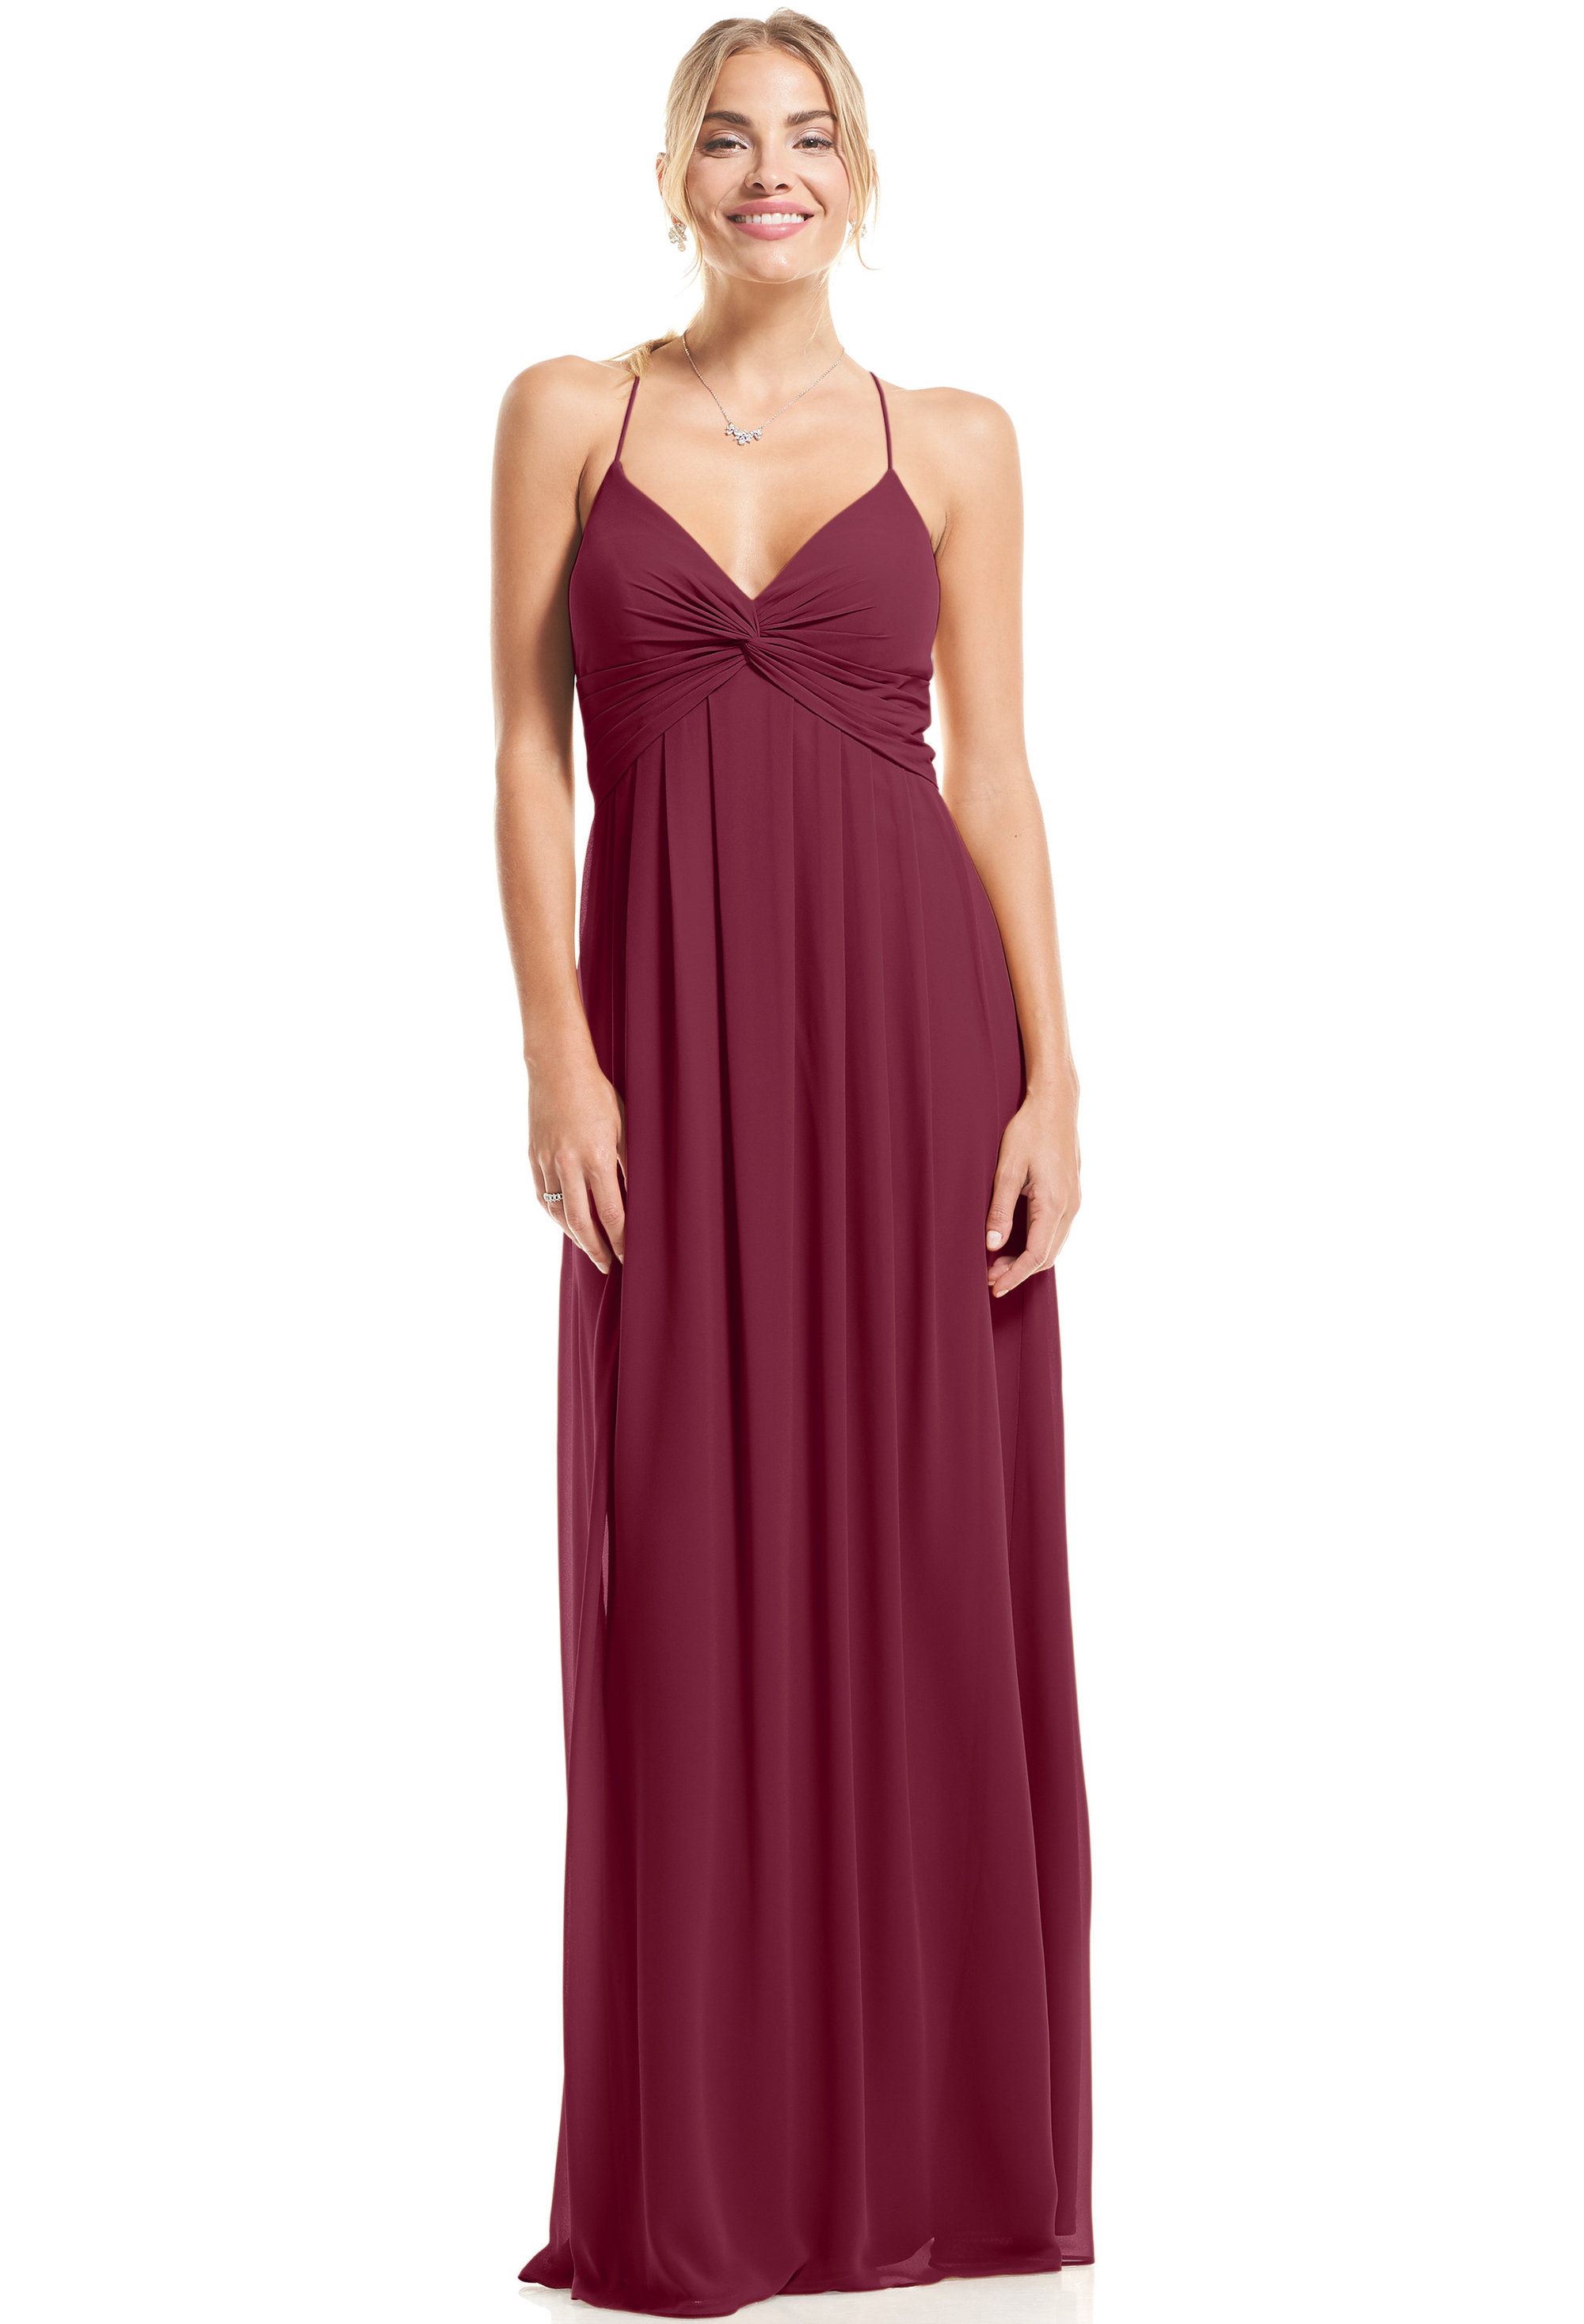 Bill Levkoff SANGRIA Chiffon V-neck A-Line gown, $89.00 Front